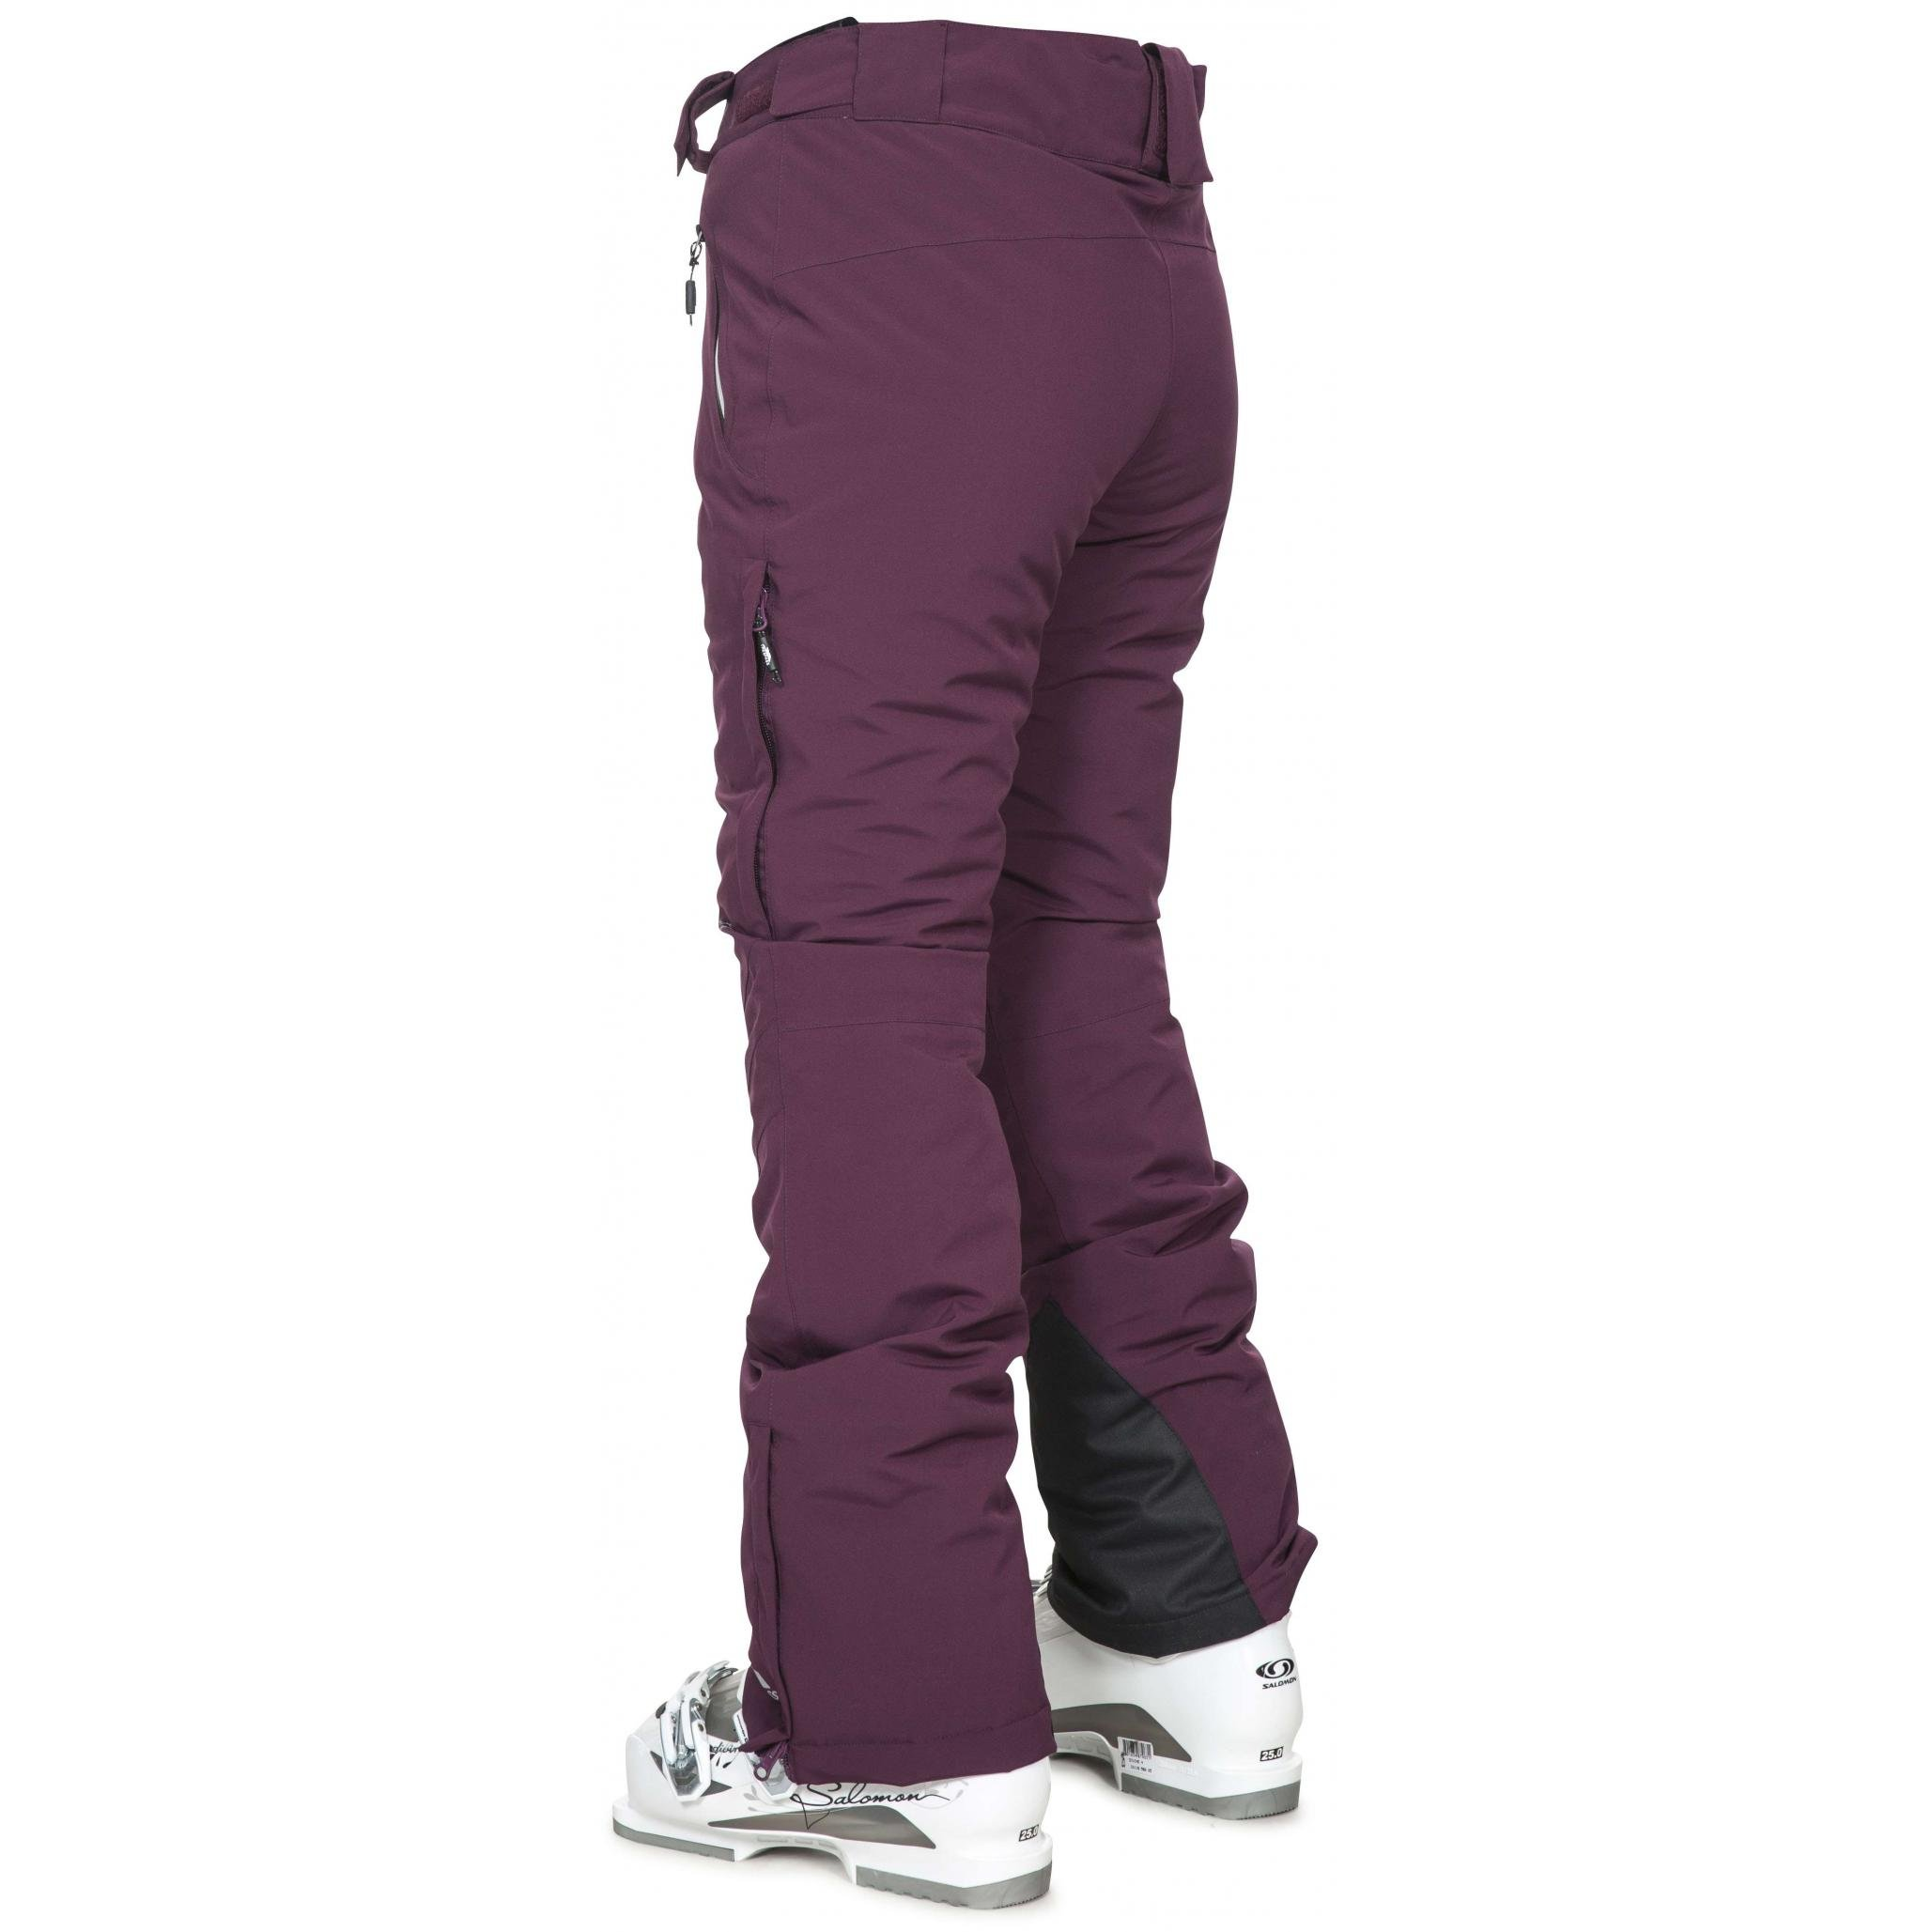 Trespass Galaya Womens Ski Pants (Potent Purple) - Wow Camping a5b627196